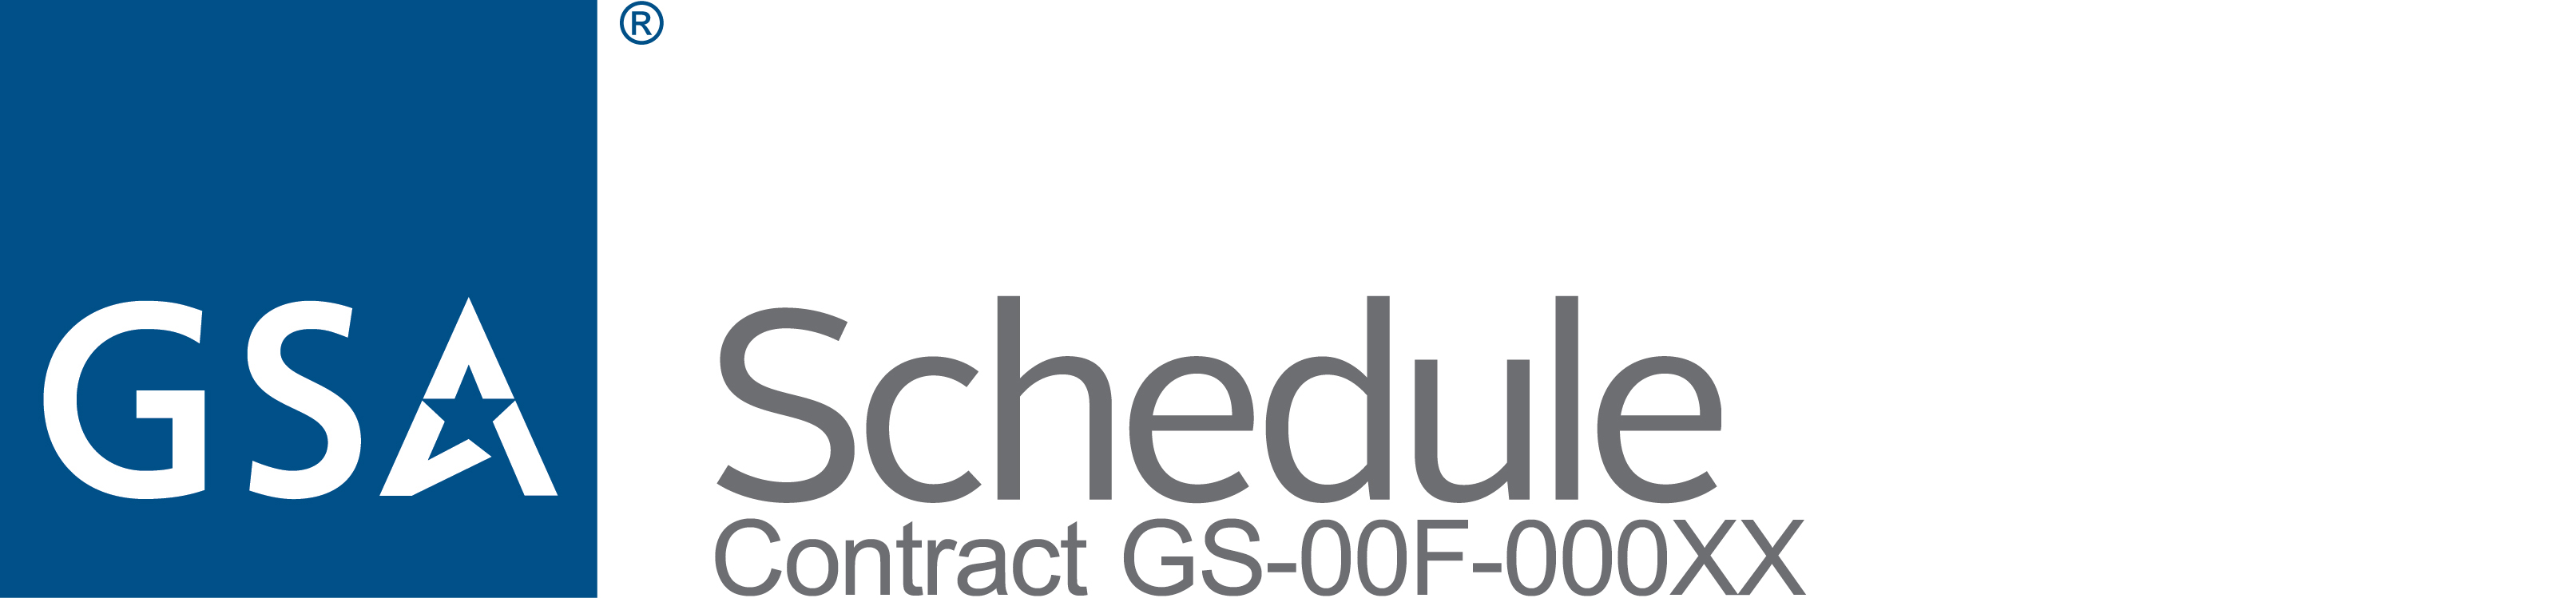 GSA Schedule Logo with Contract Number Image